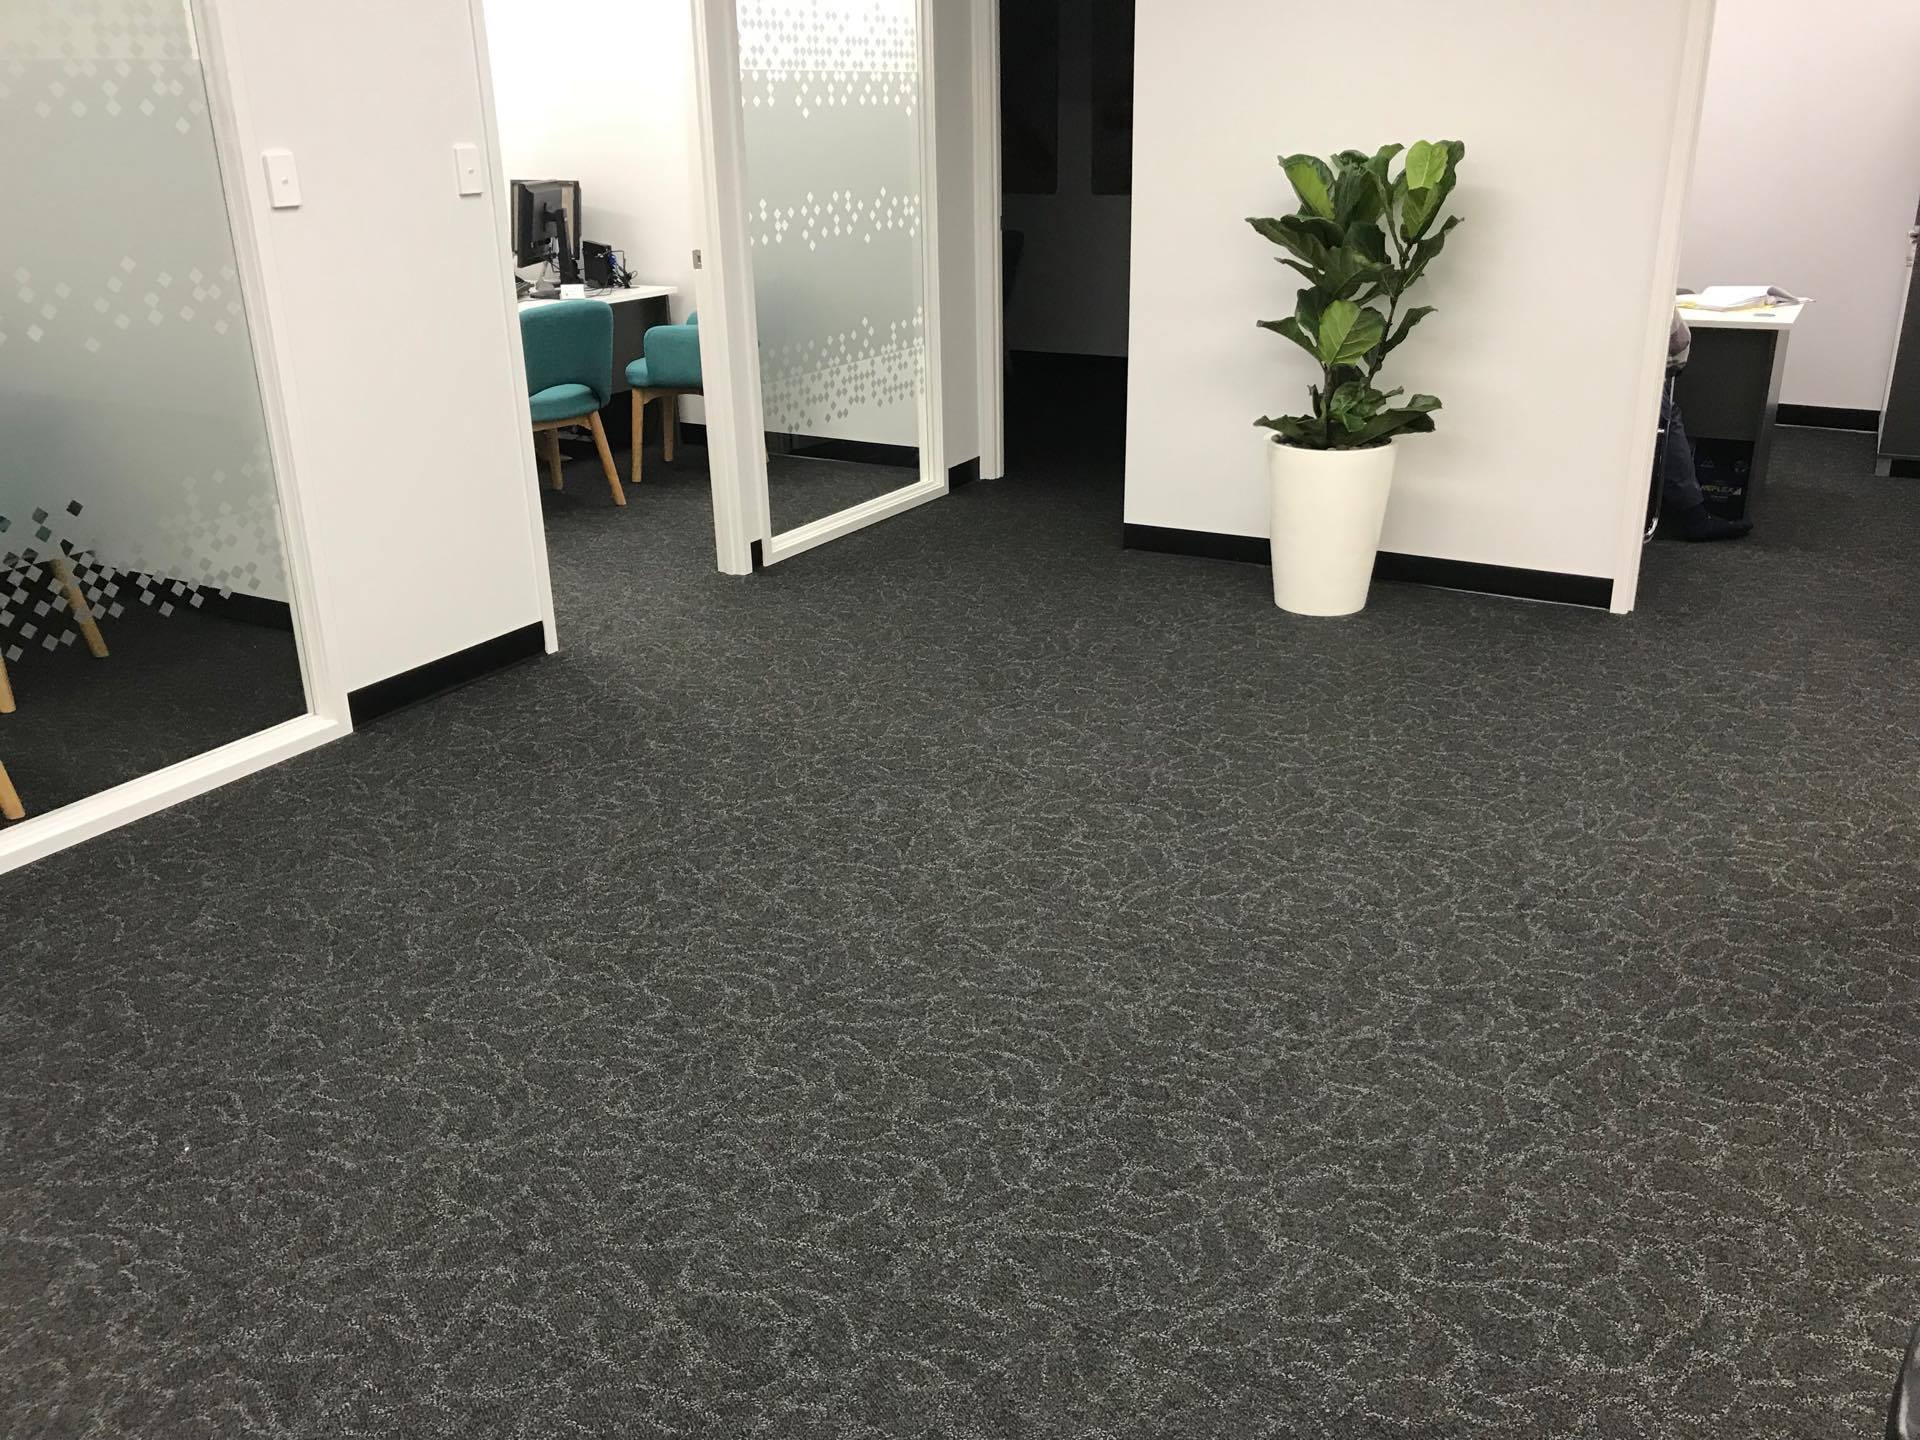 Office carpet.jpg